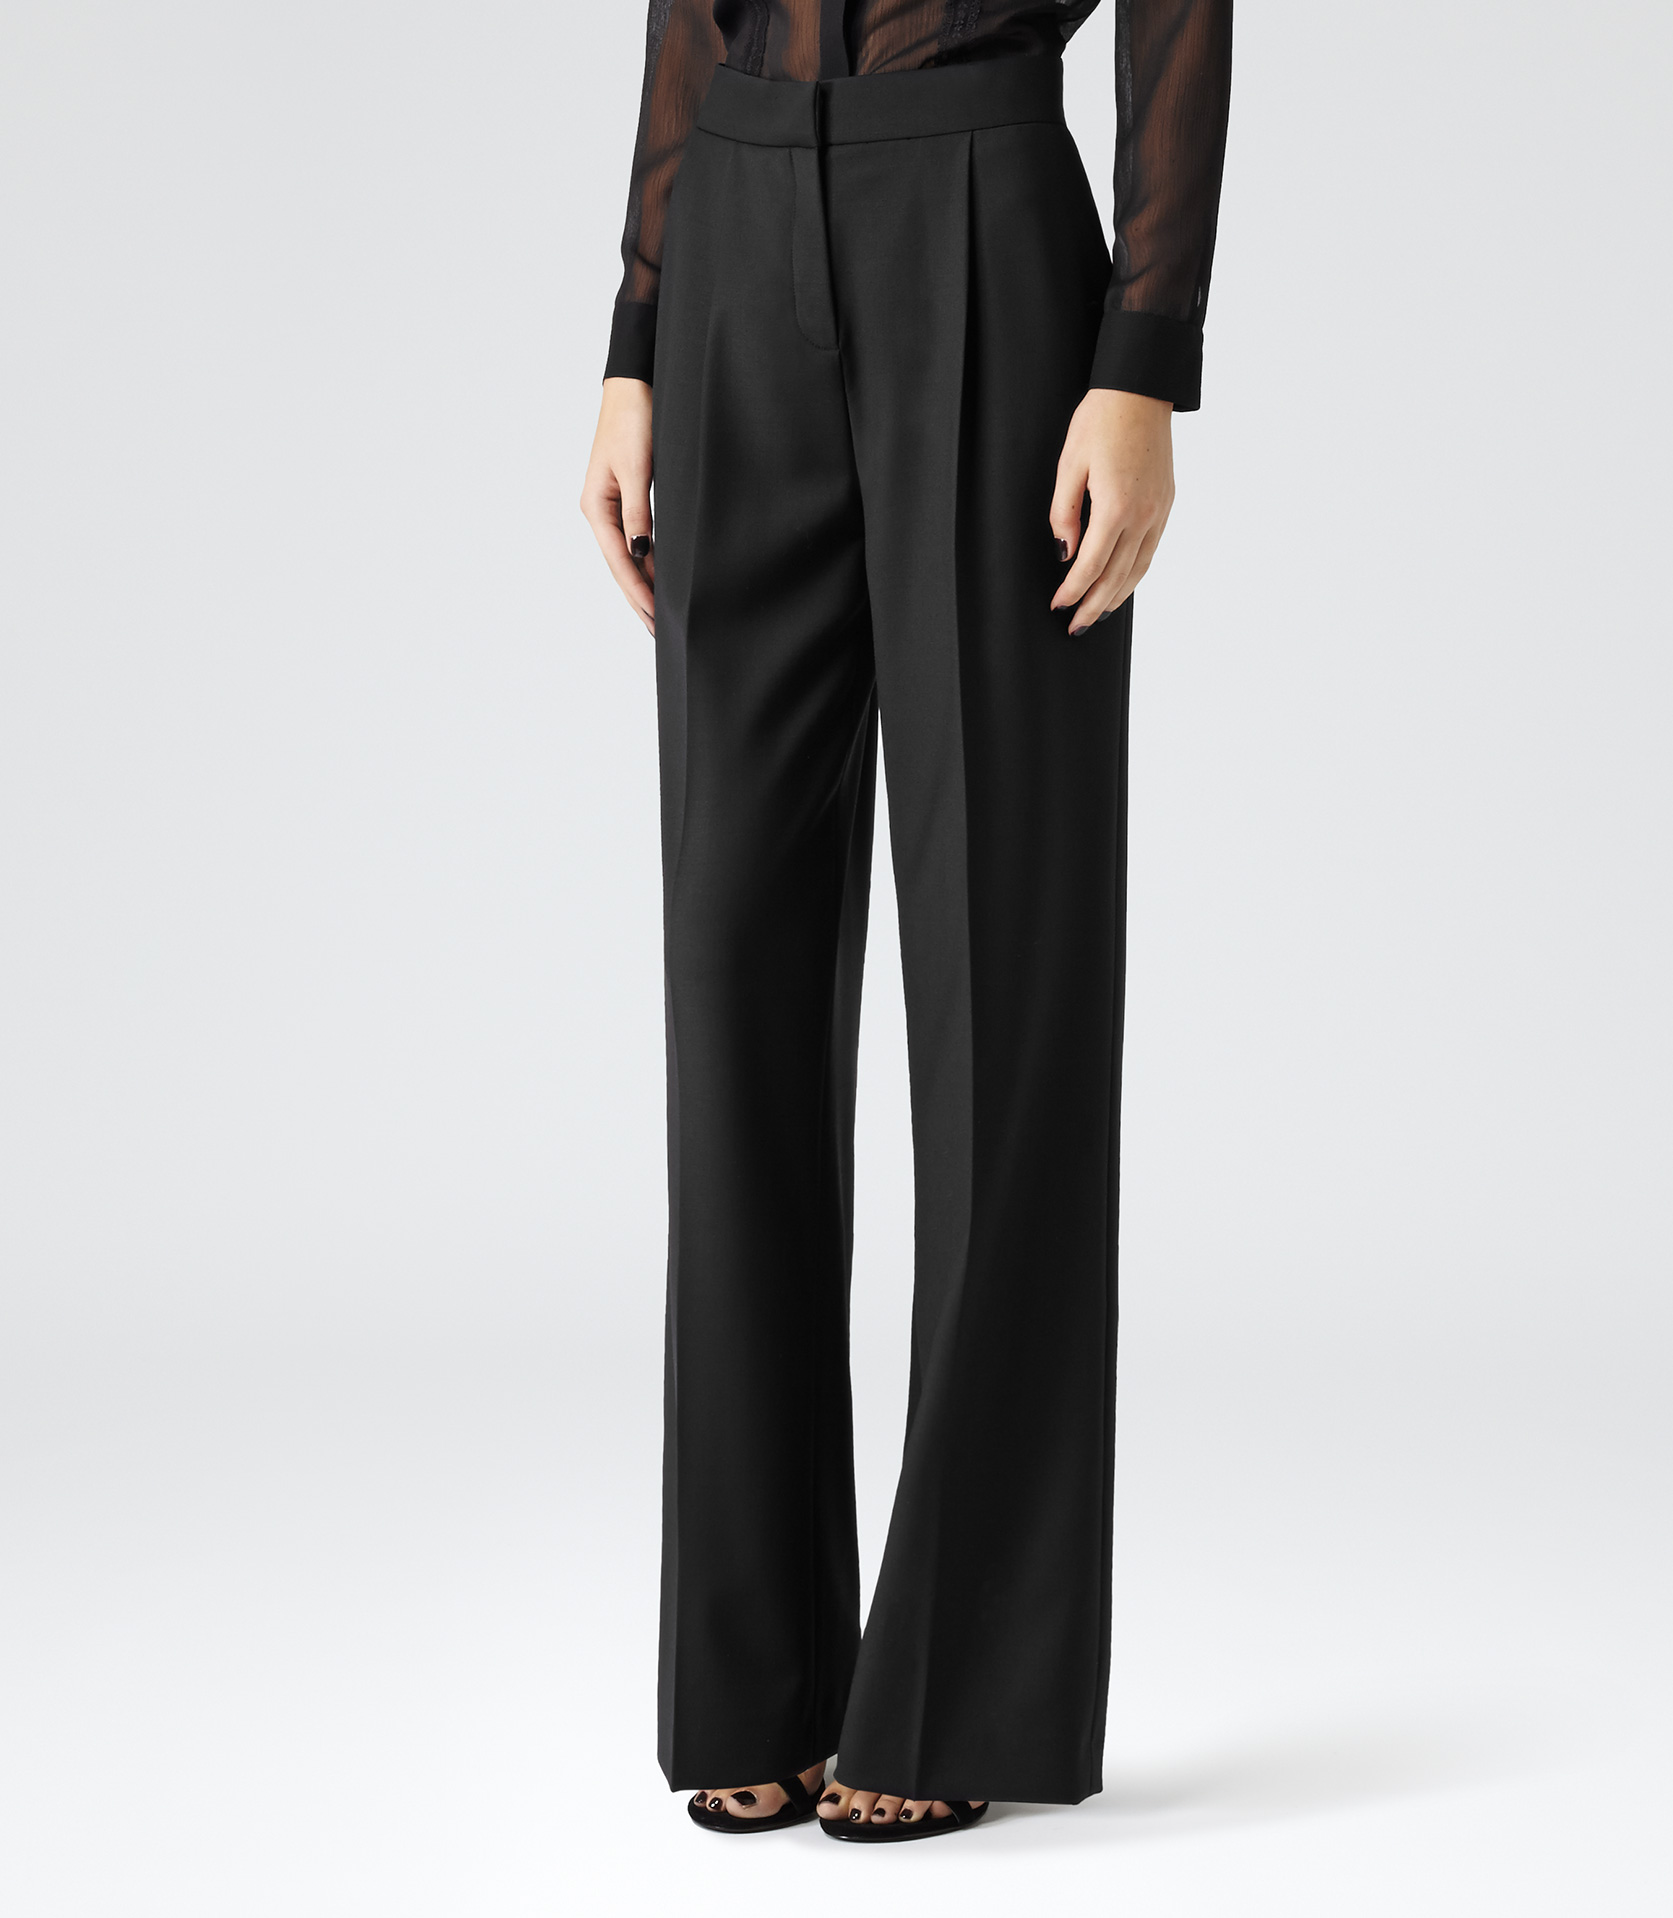 Francois Black High-waisted Wide Leg Trousers - REISS